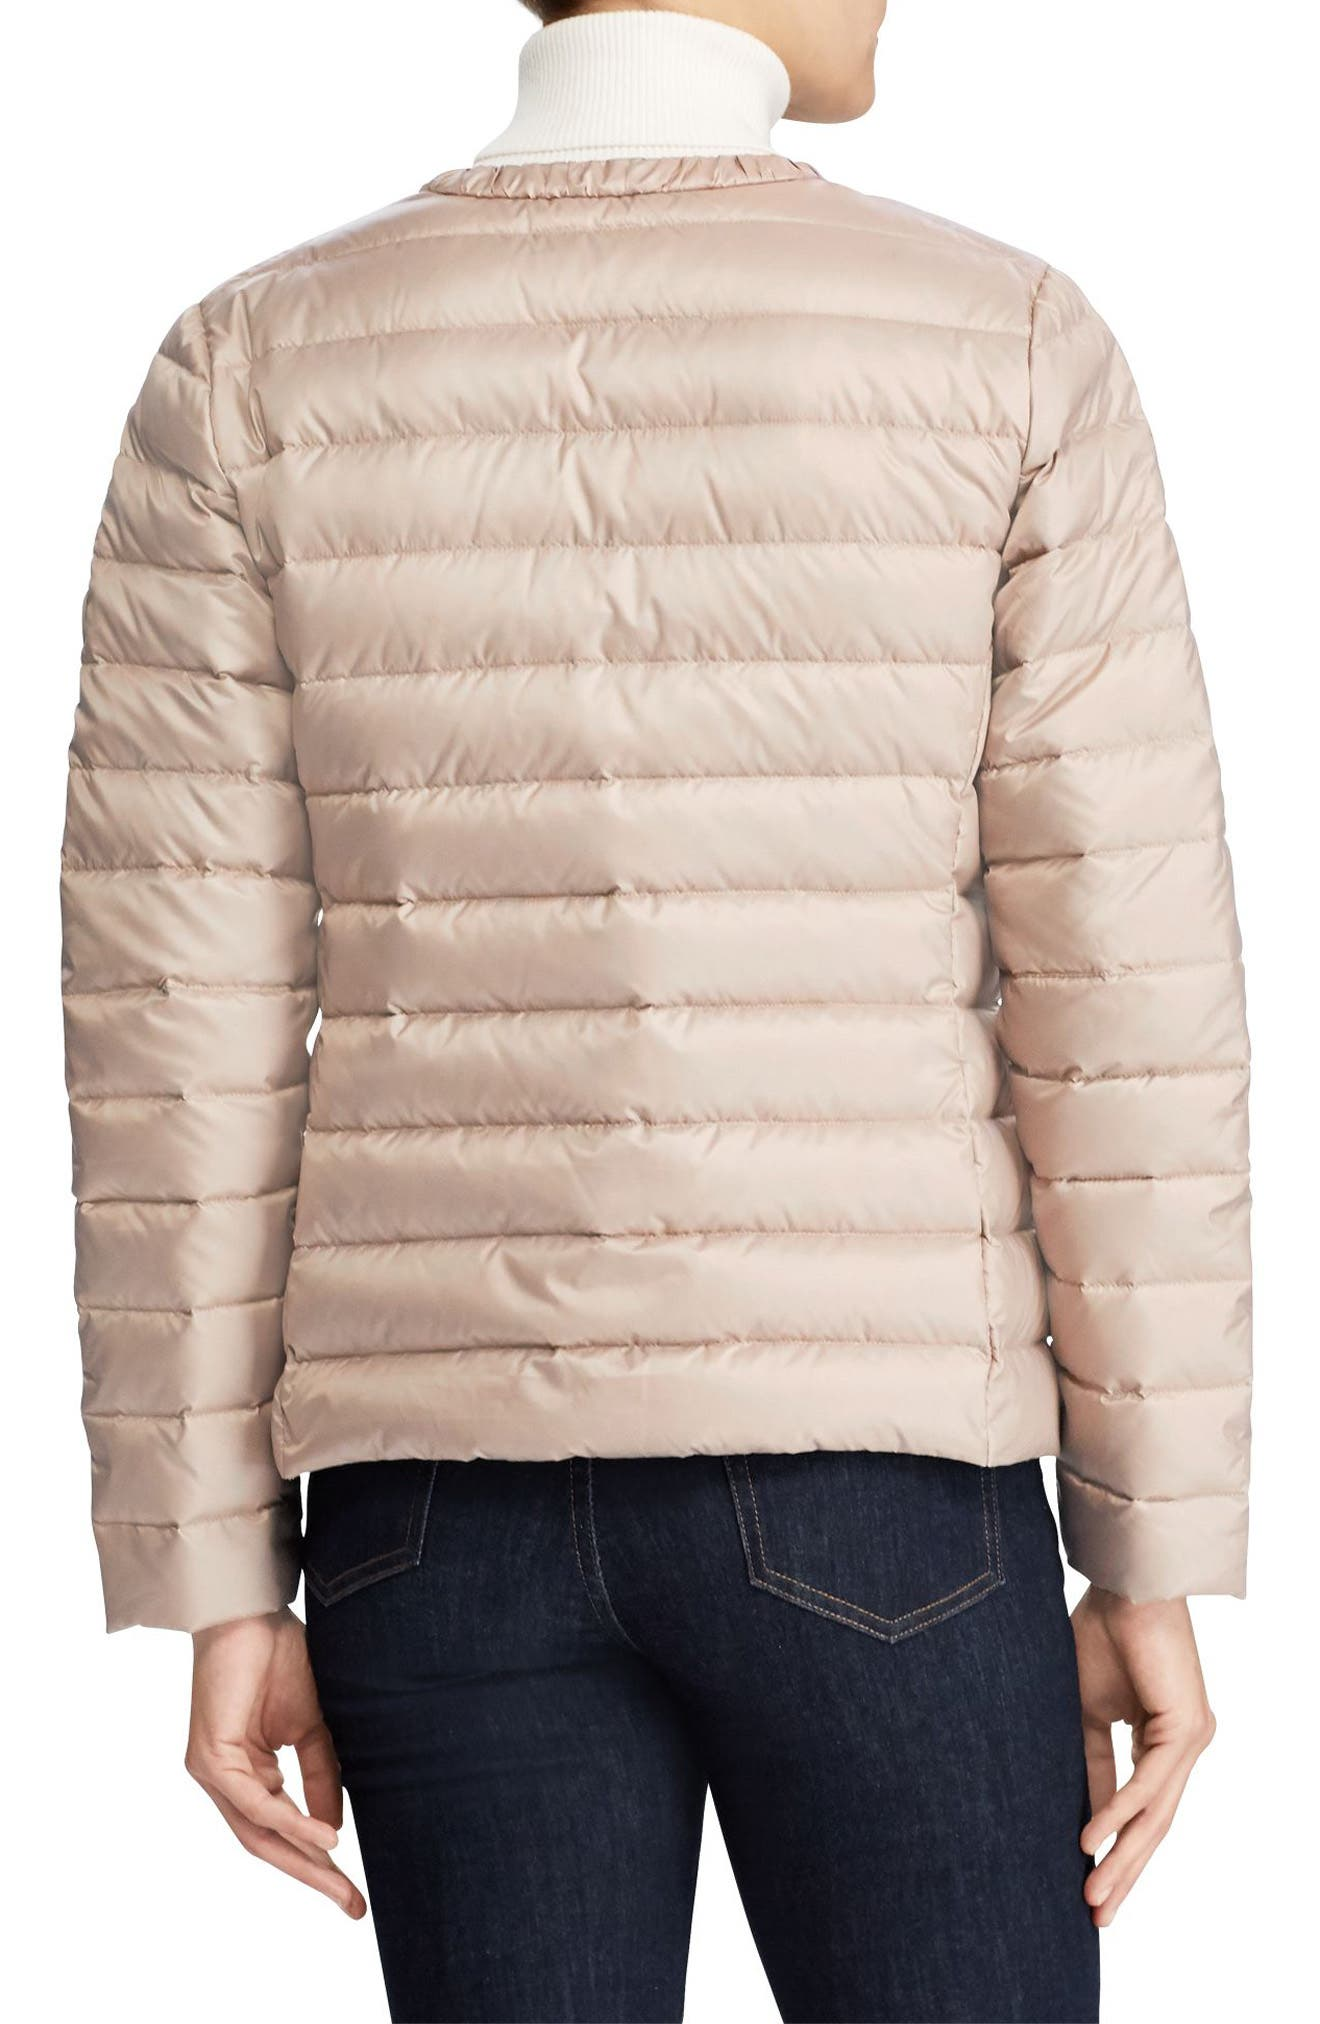 Packable Quilted Collarless Down Jacket,                             Alternate thumbnail 2, color,                             286